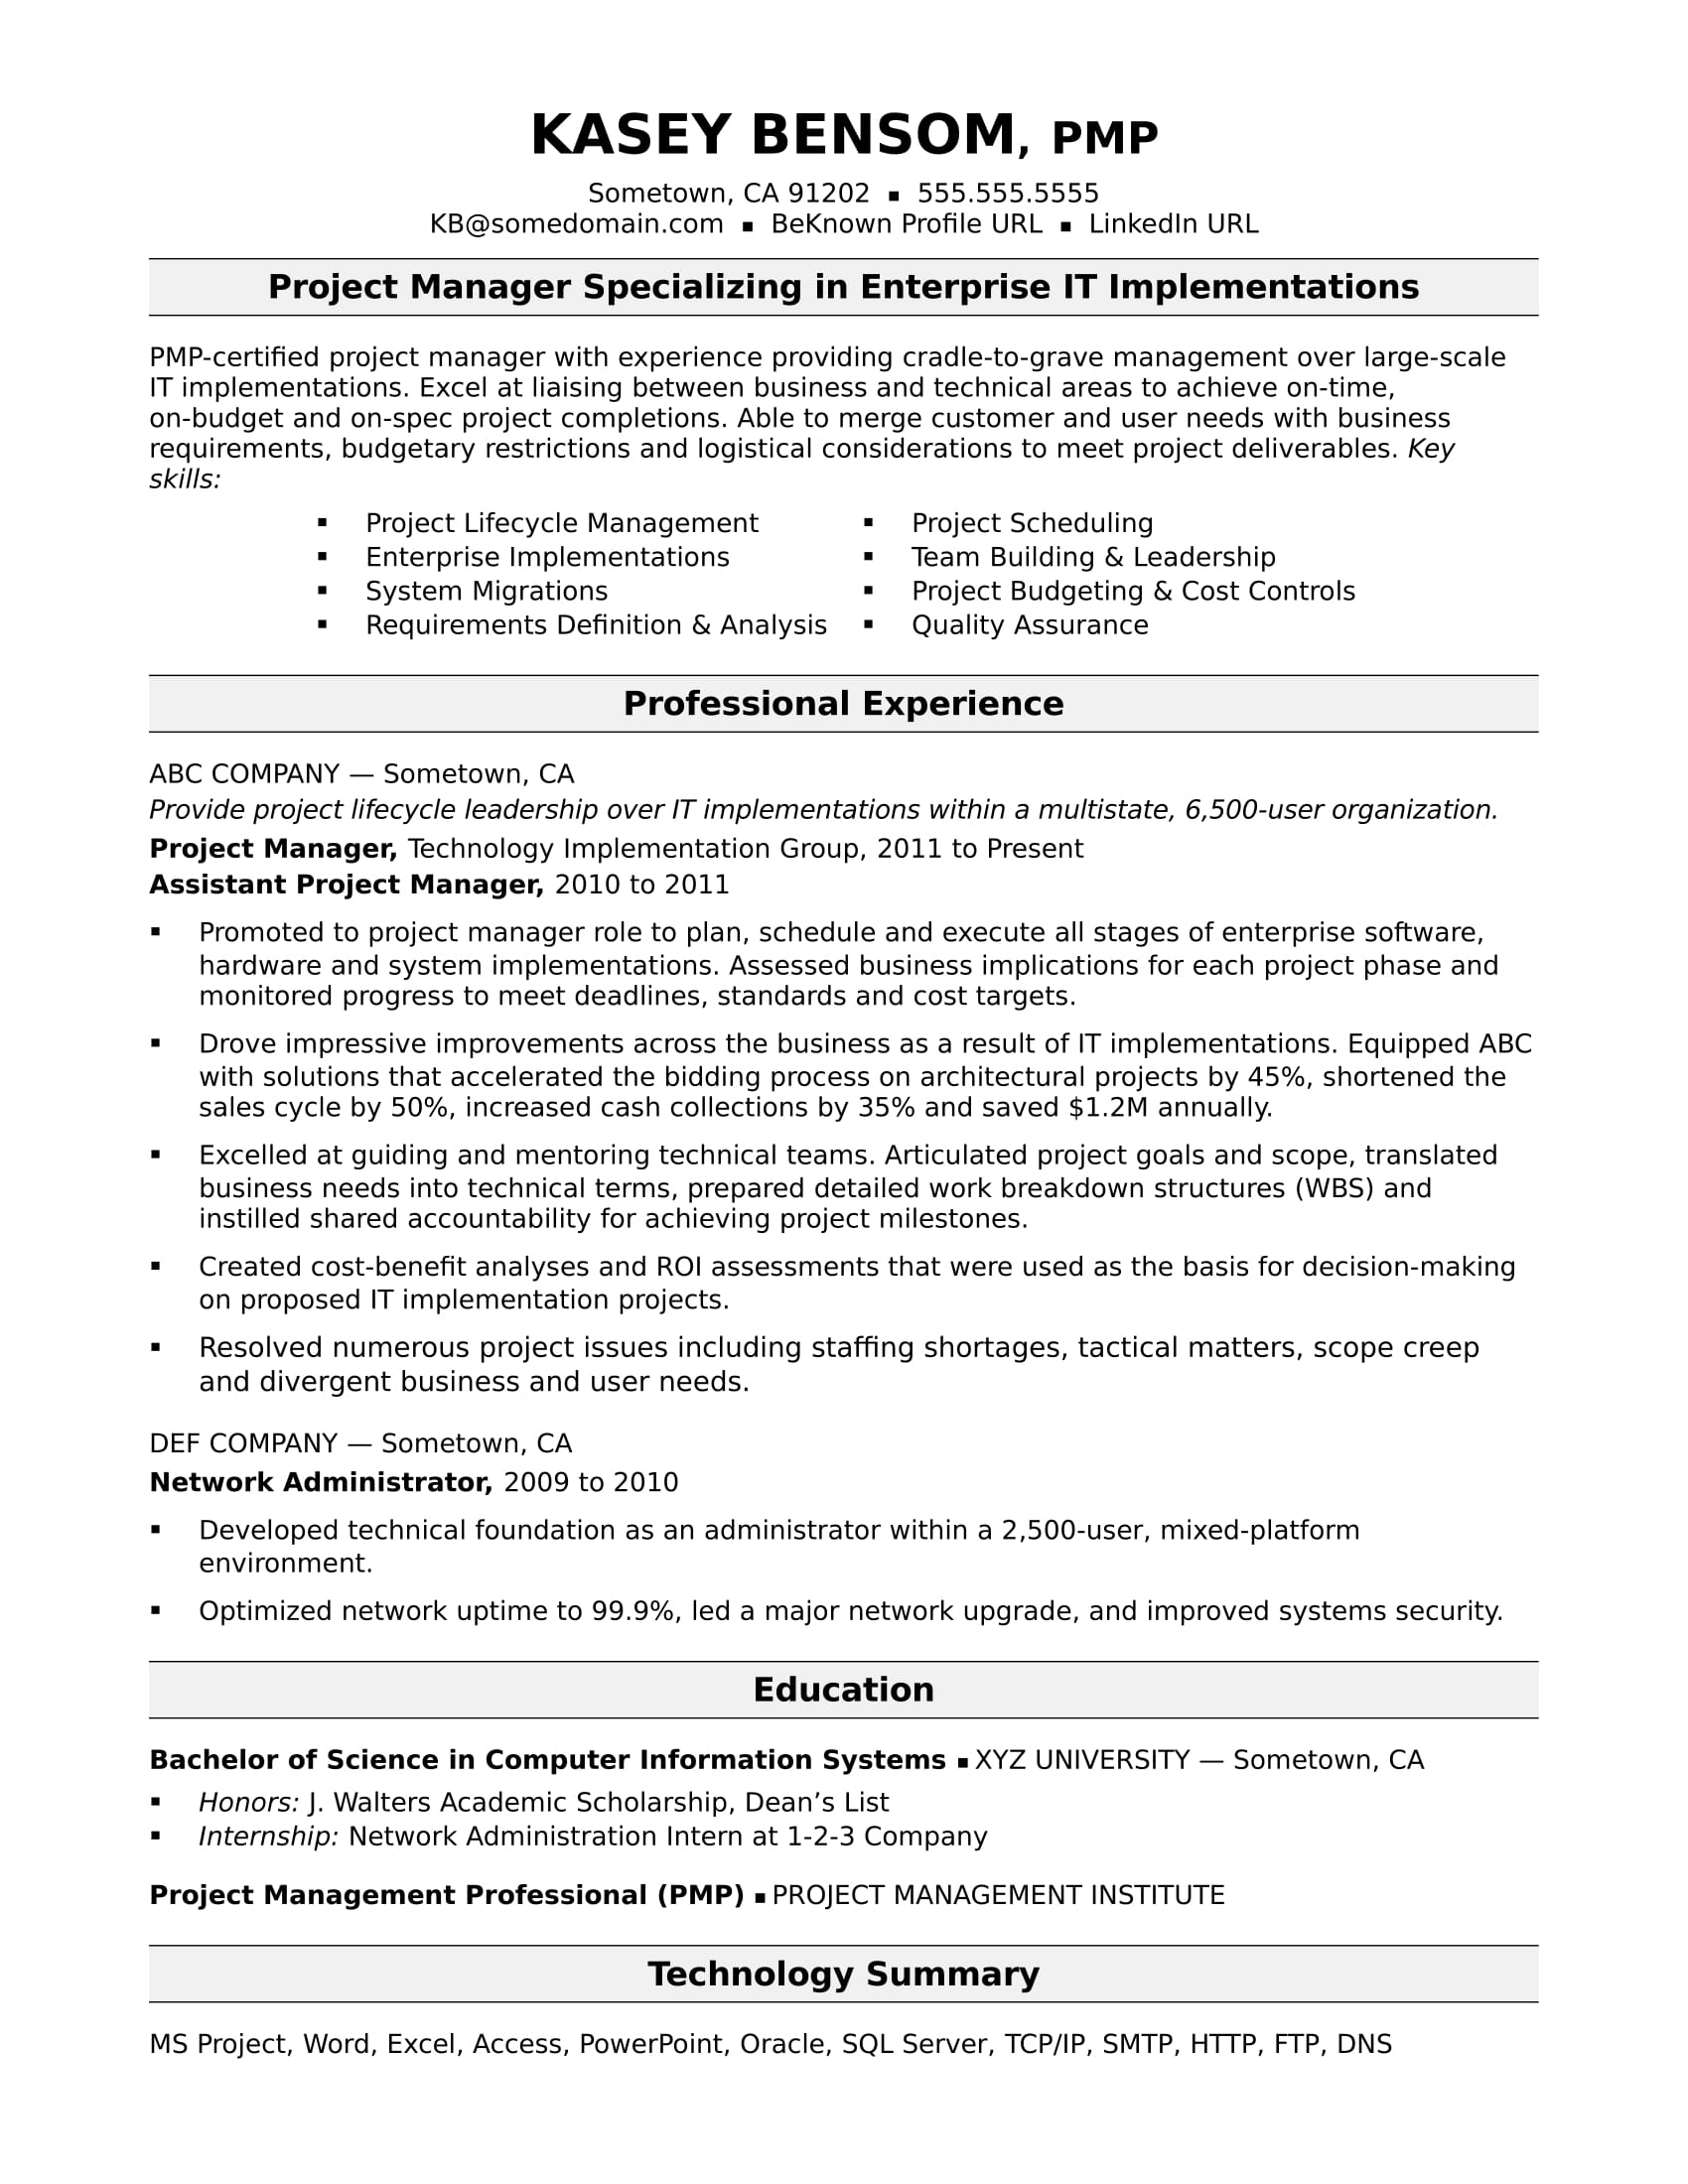 sample resume for midlevel it project manager monster excel experience copyright neuro Resume Sample Resume Excel Experience